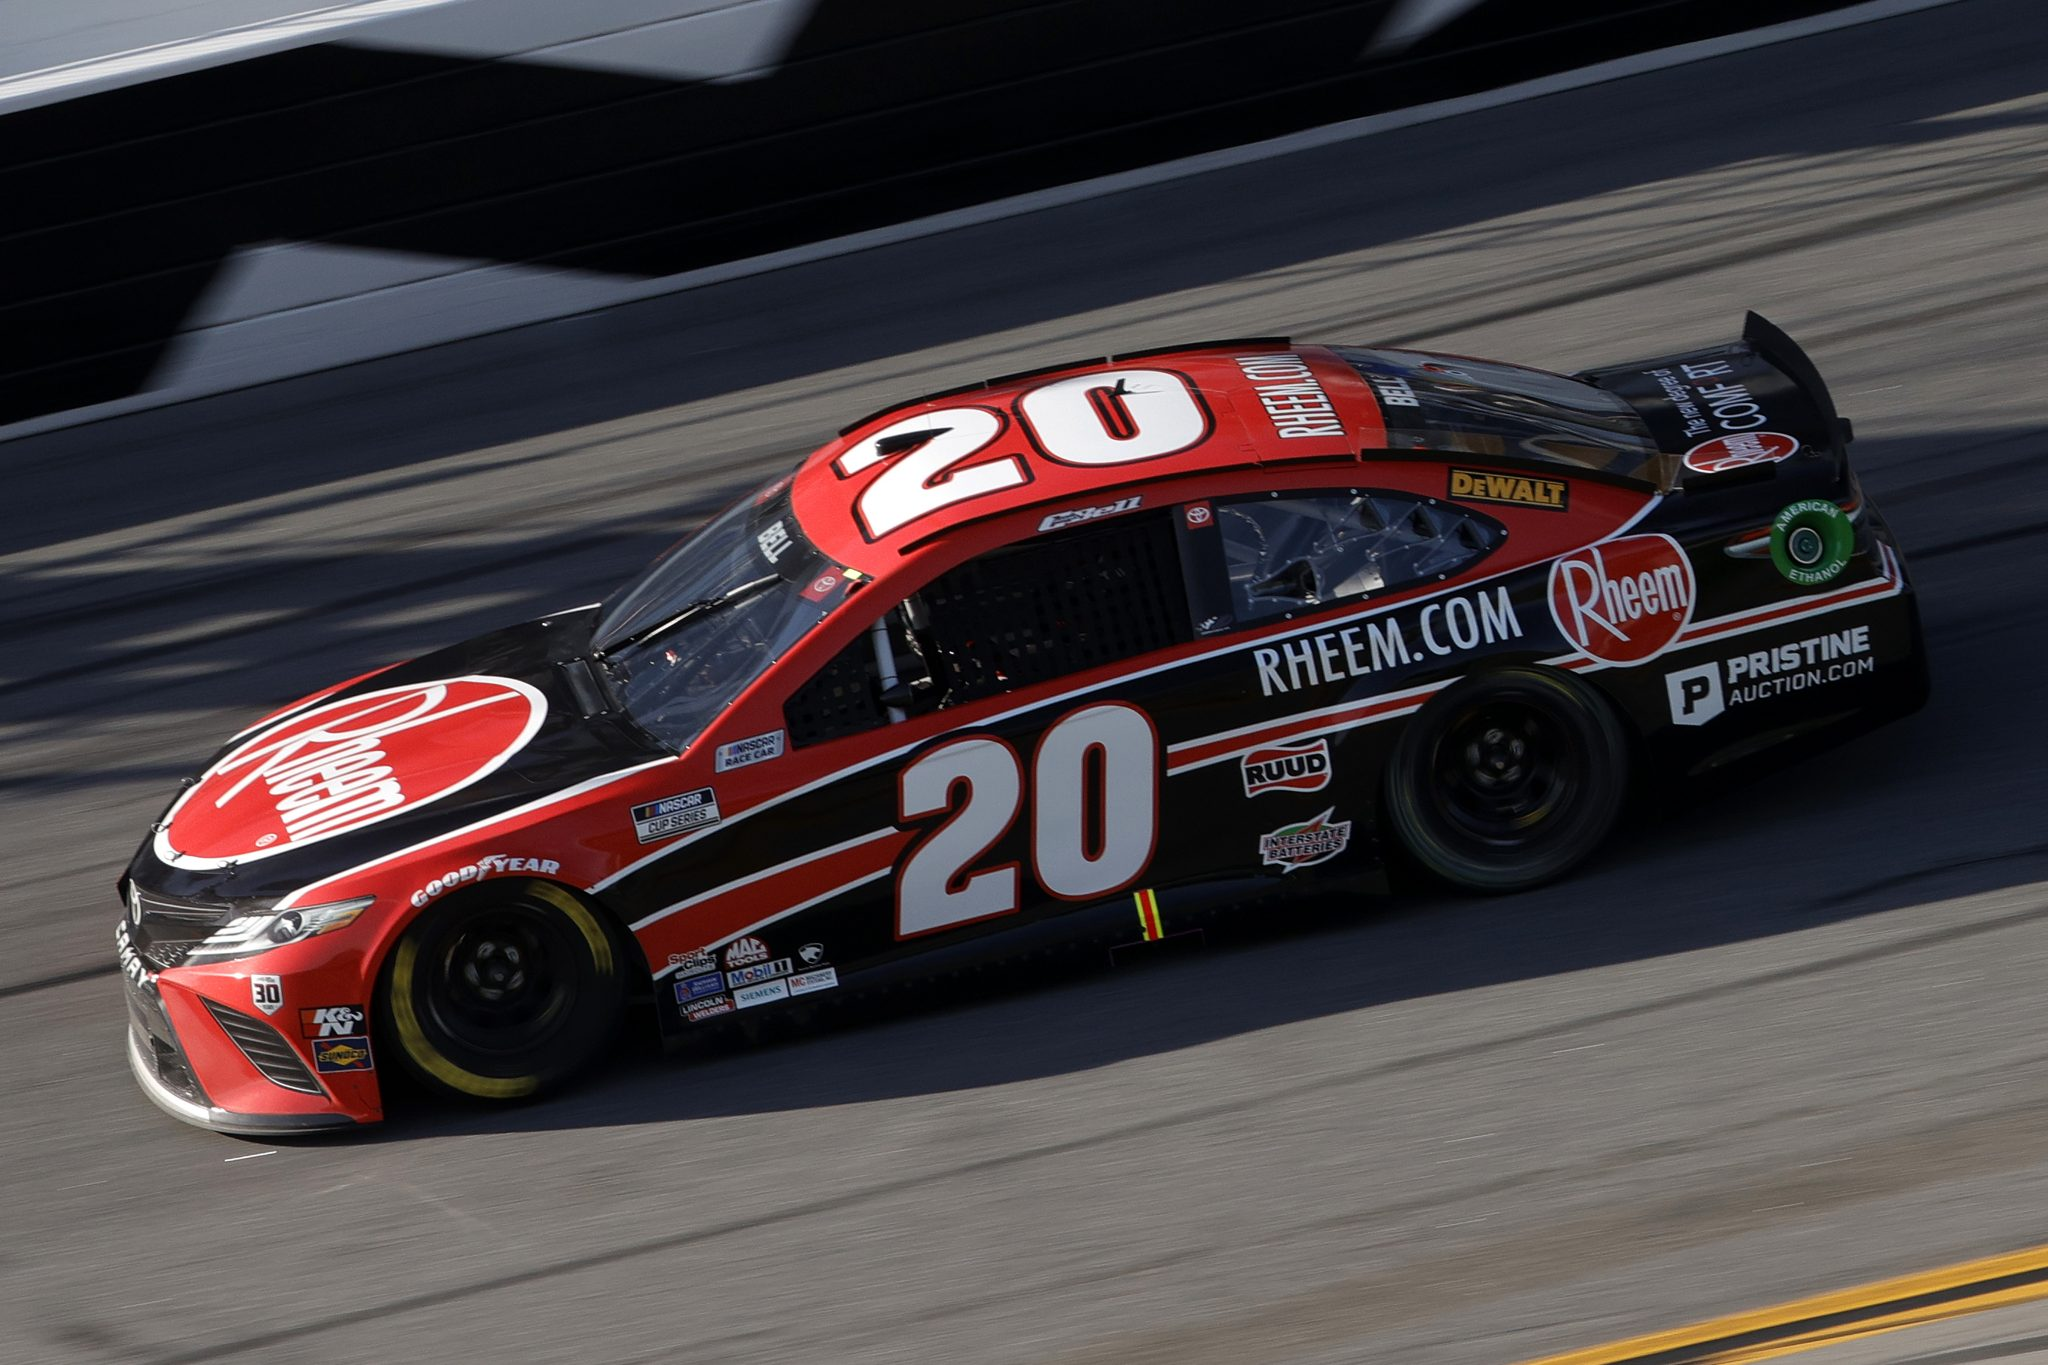 DAYTONA BEACH, FLORIDA - FEBRUARY 21: Christopher Bell, driver of the #20 Rheem Toyota, drives during the NASCAR Cup Series O'Reilly Auto Parts 253 at Daytona International Speedway on February 21, 2021 in Daytona Beach, Florida. (Photo by Chris Graythen/Getty Images) | Getty Images